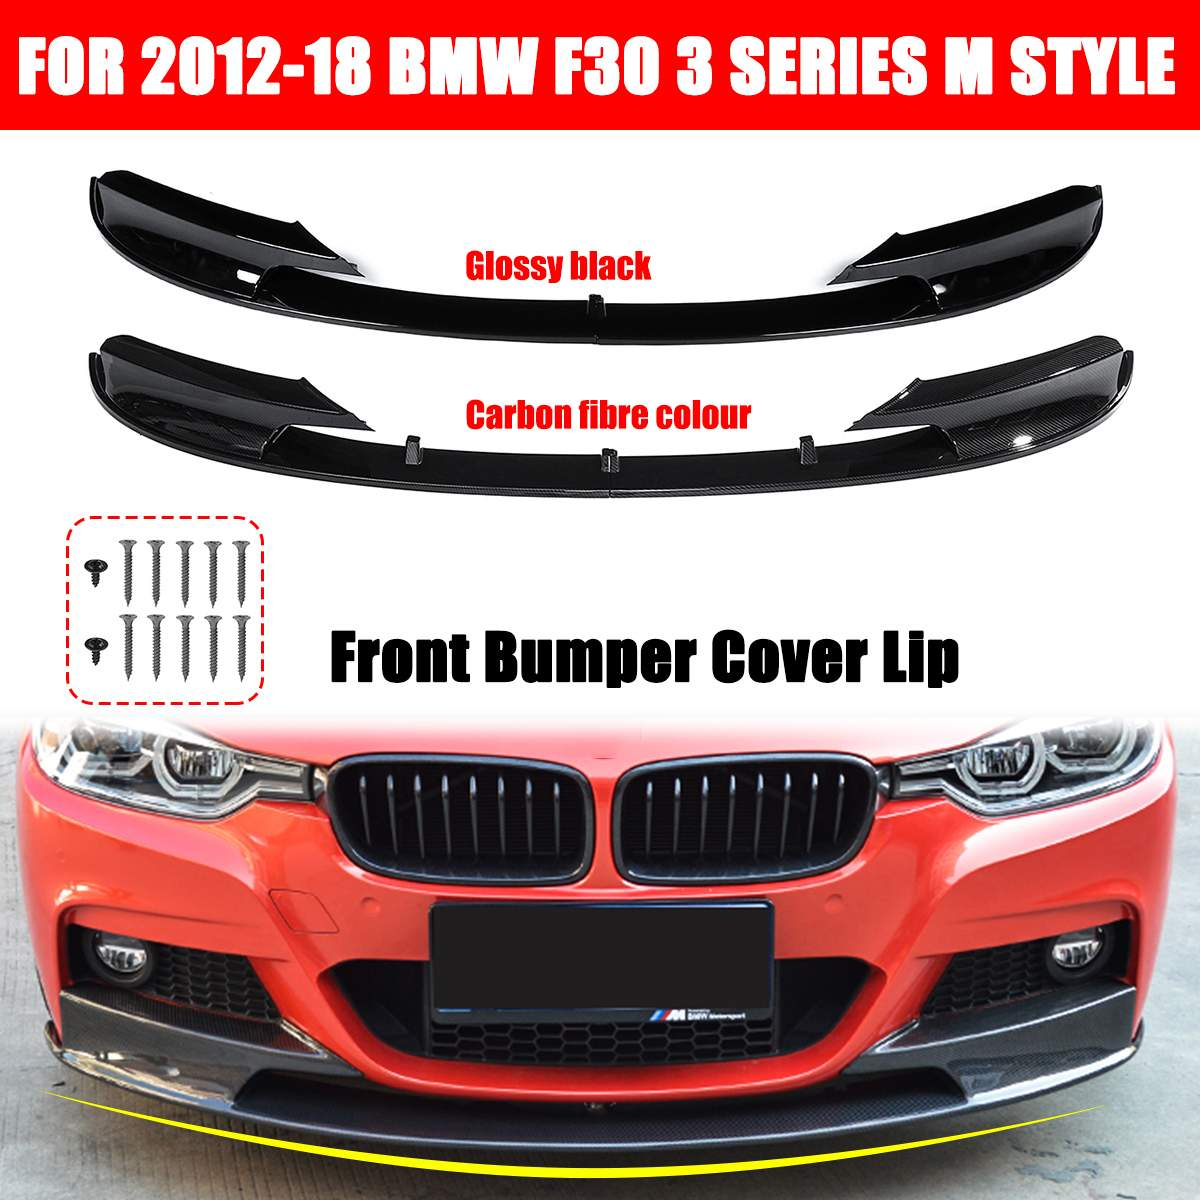 <font><b>1</b></font> Pair Front Bumper Cover Carbon Fiber / Black Lip Surface For BMW F30 3 Series M Style 2012 2013 2014 2015 <font><b>2016</b></font> 2017 2018 Only image